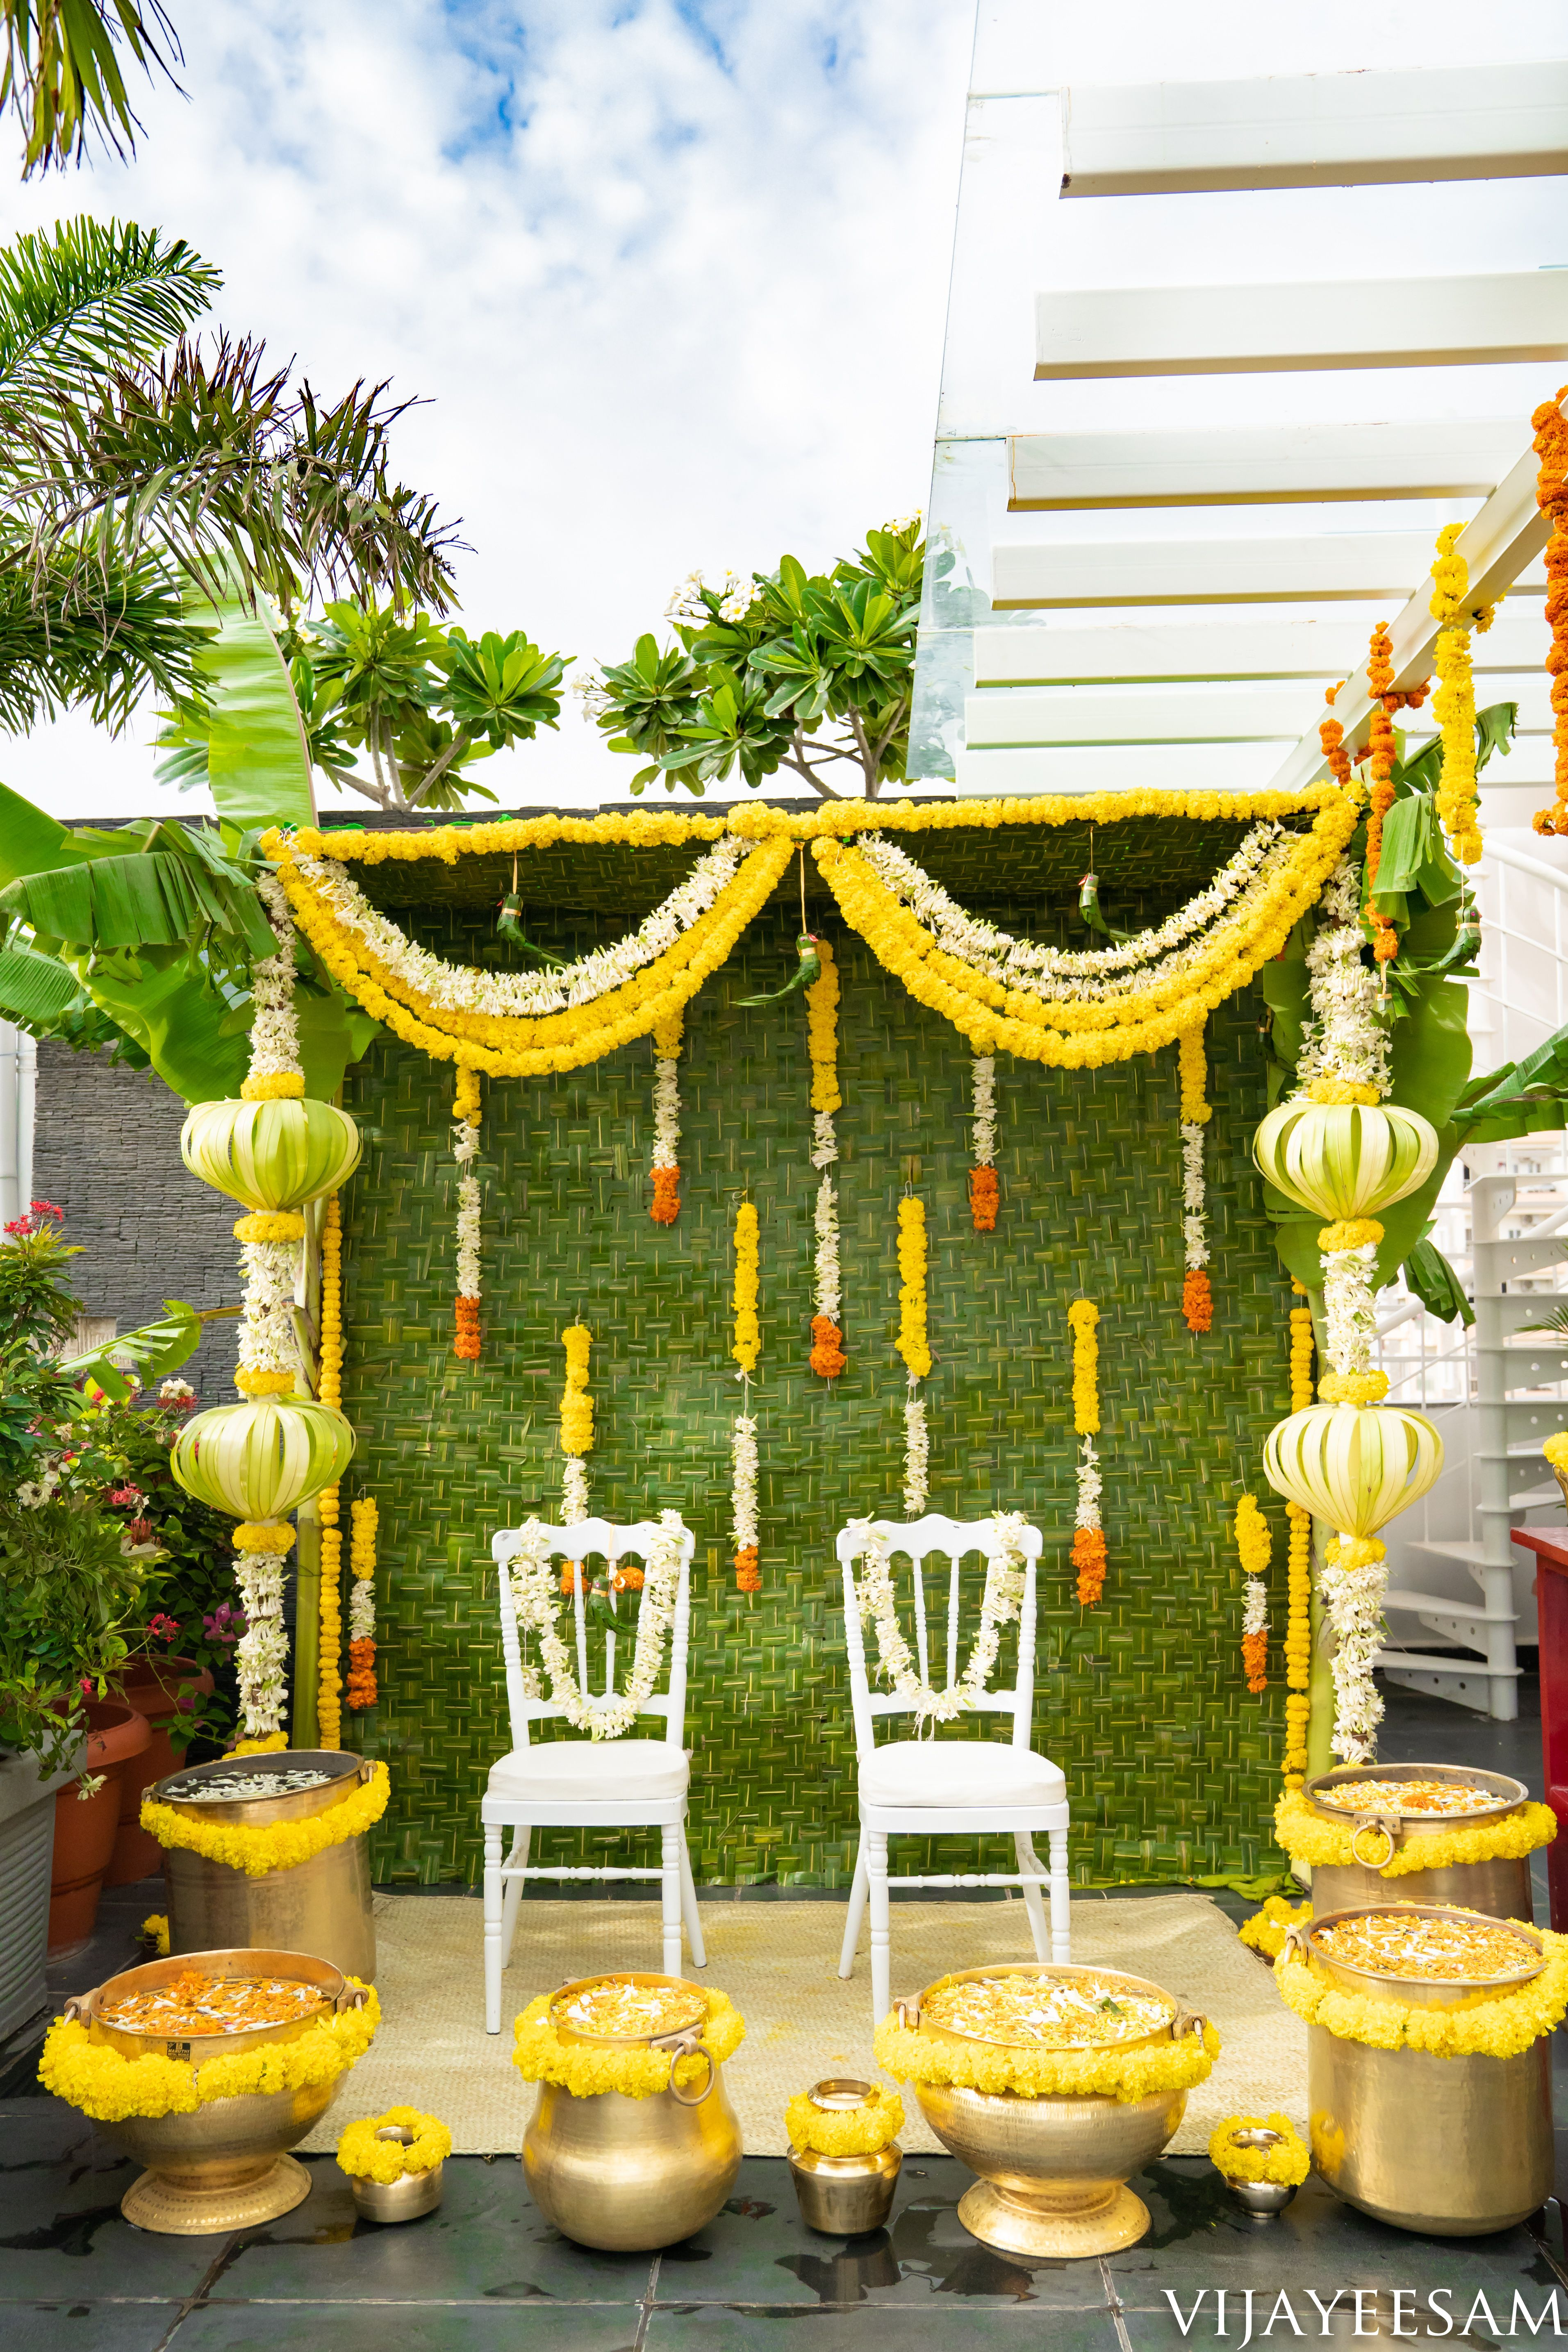 Green leaf based decor with abstract pillaiyar in white